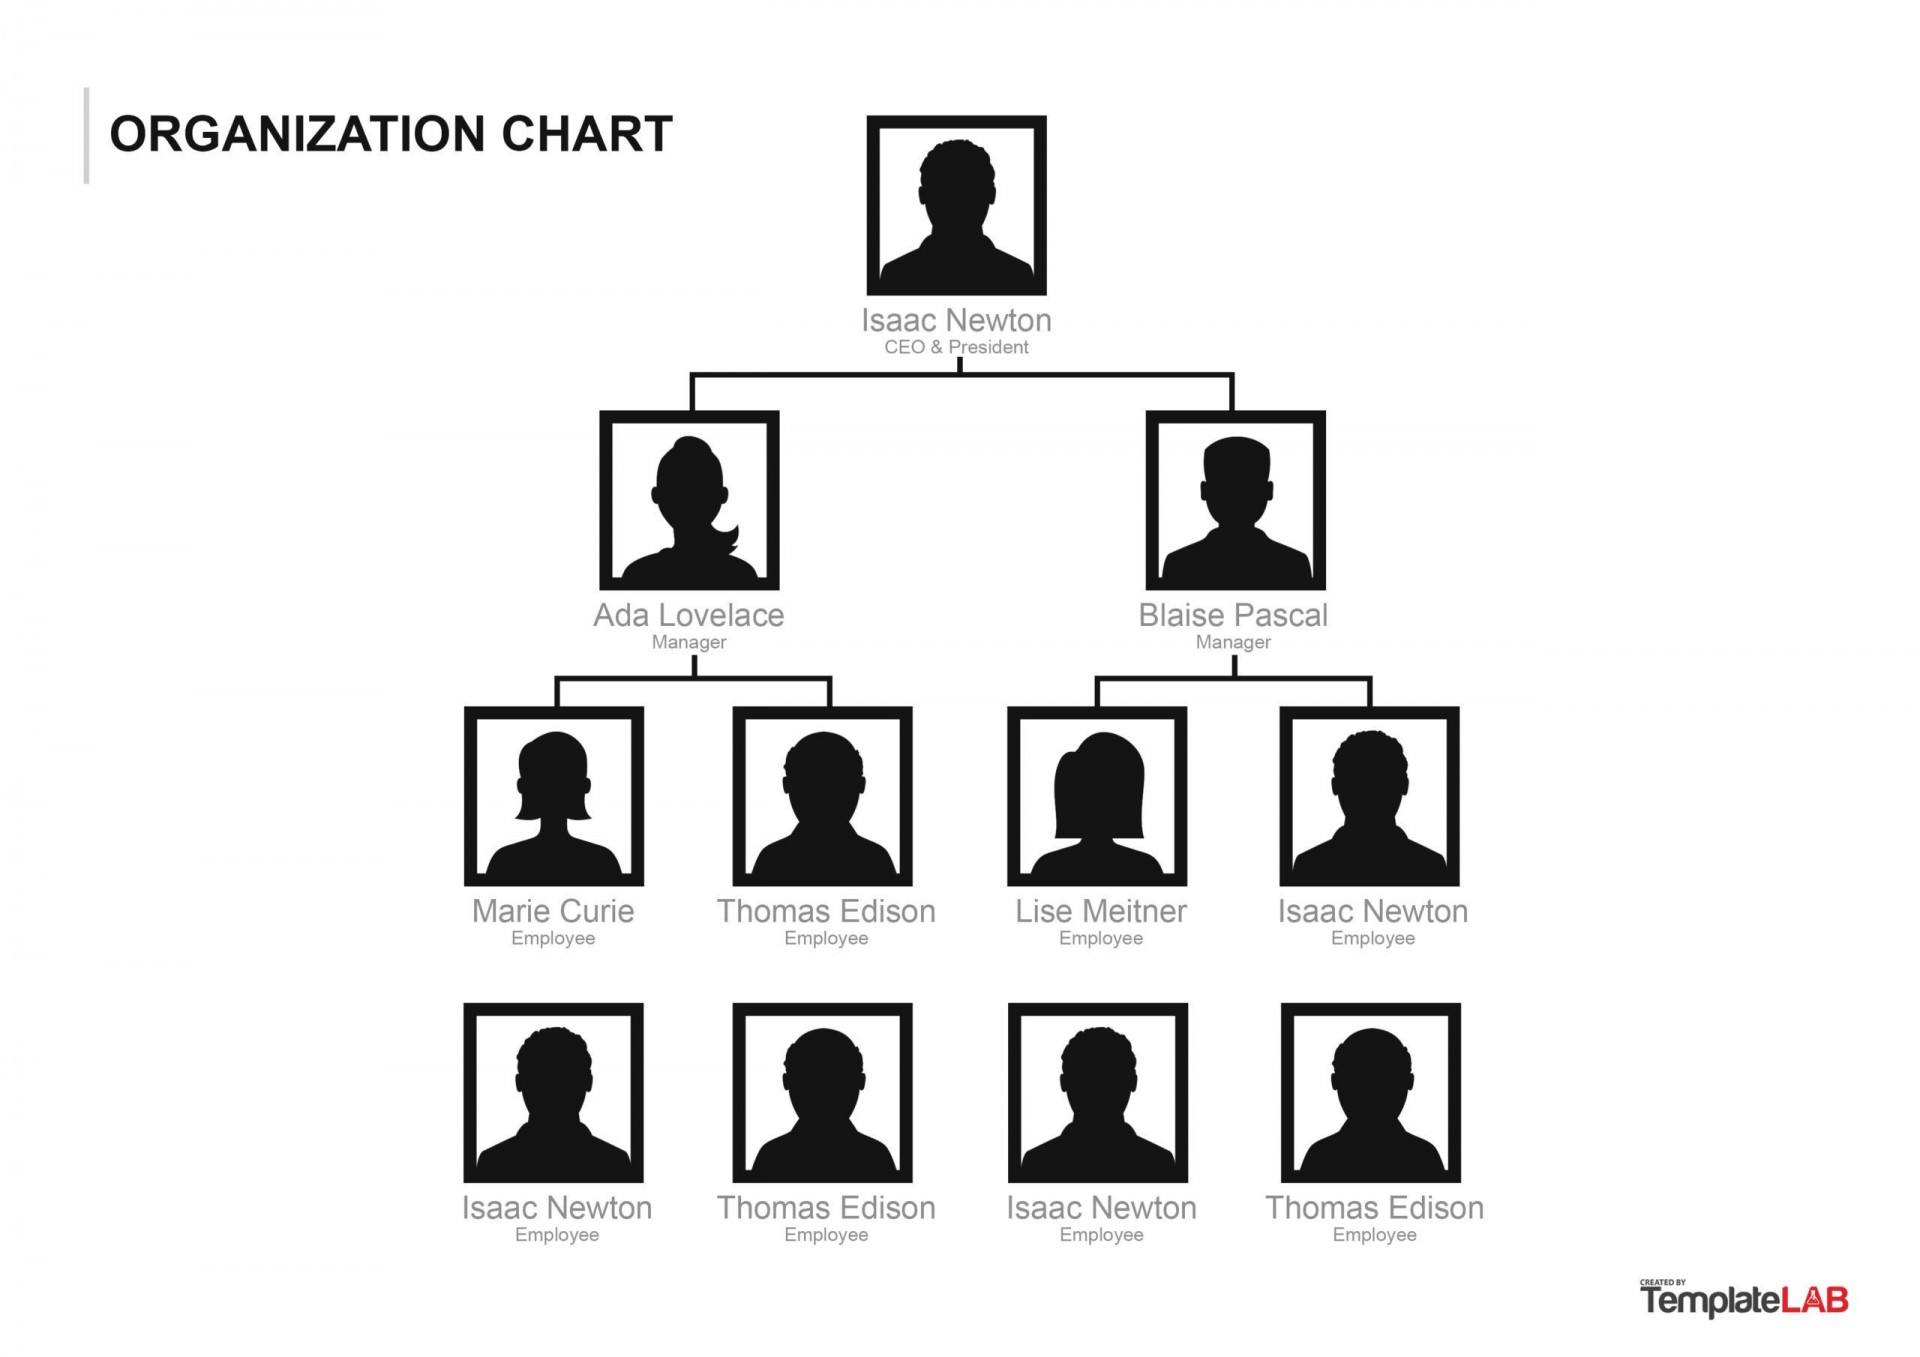 008 Unforgettable Org Chart Template Excel 2013 Sample  Organizational1920